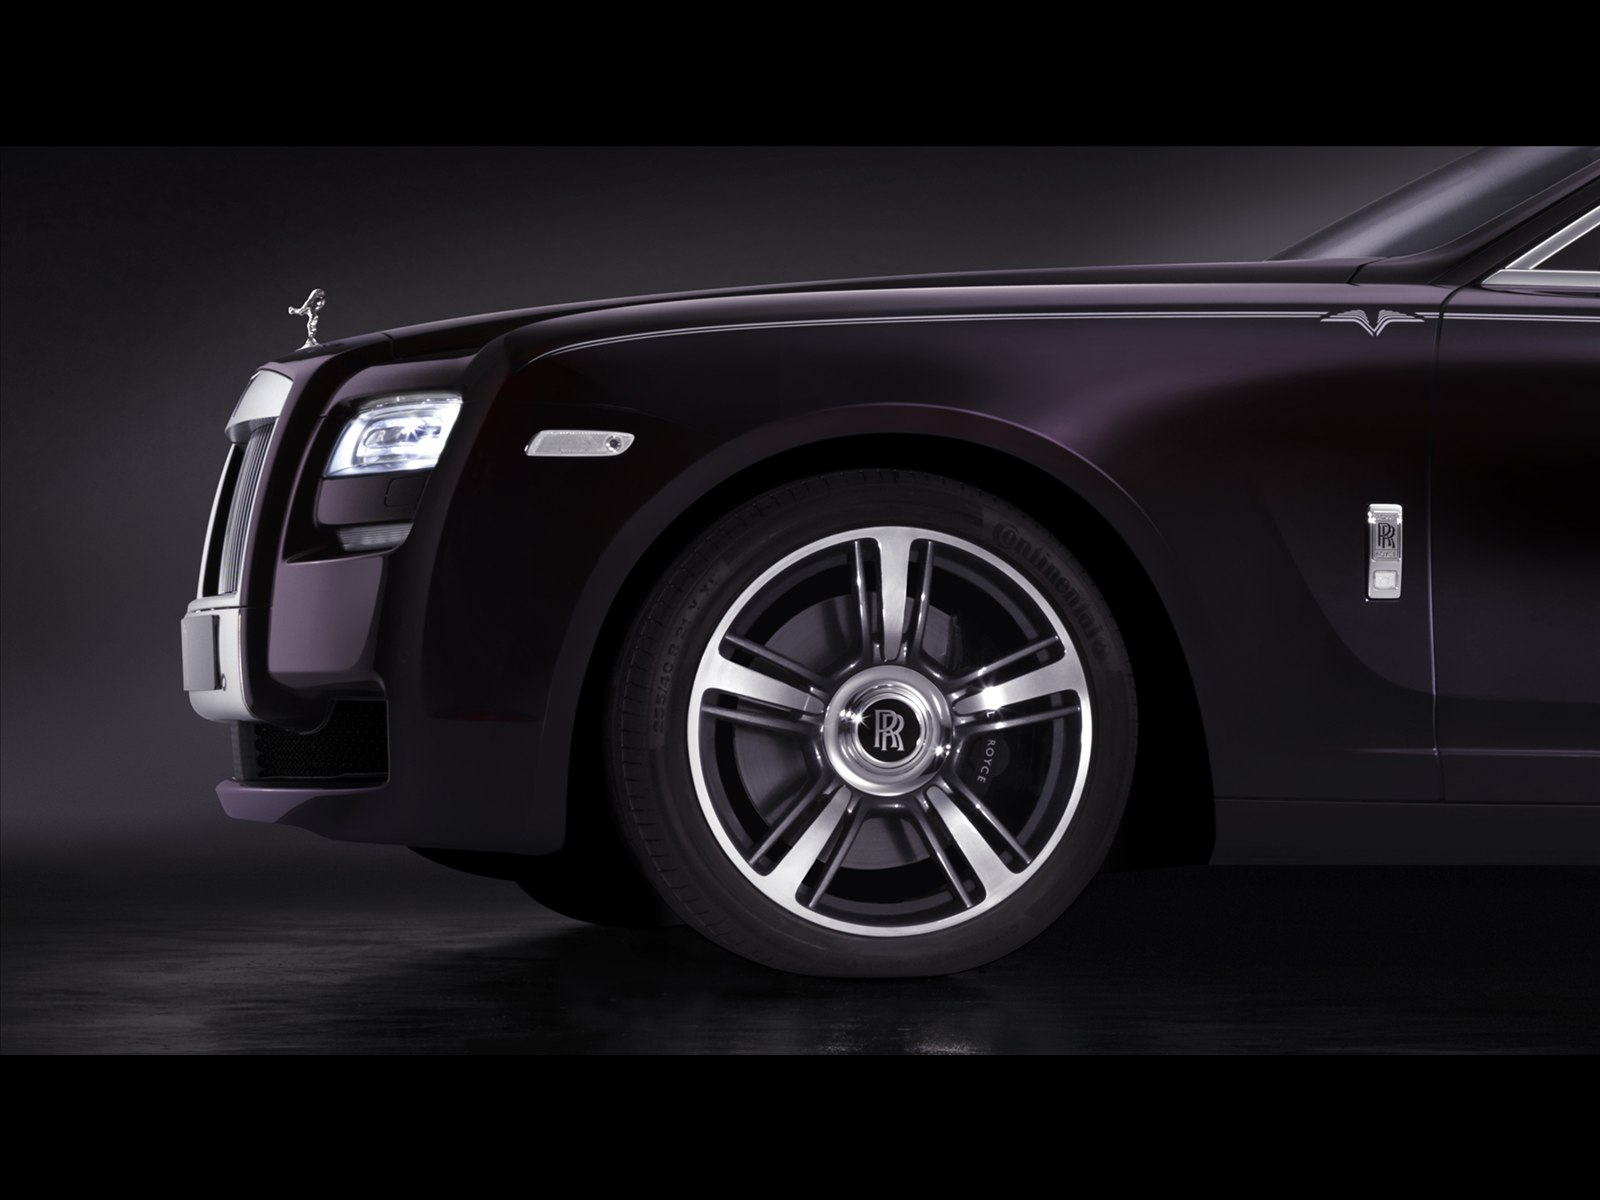 2015 Rolls Royce Ghost V Specification photo - 2